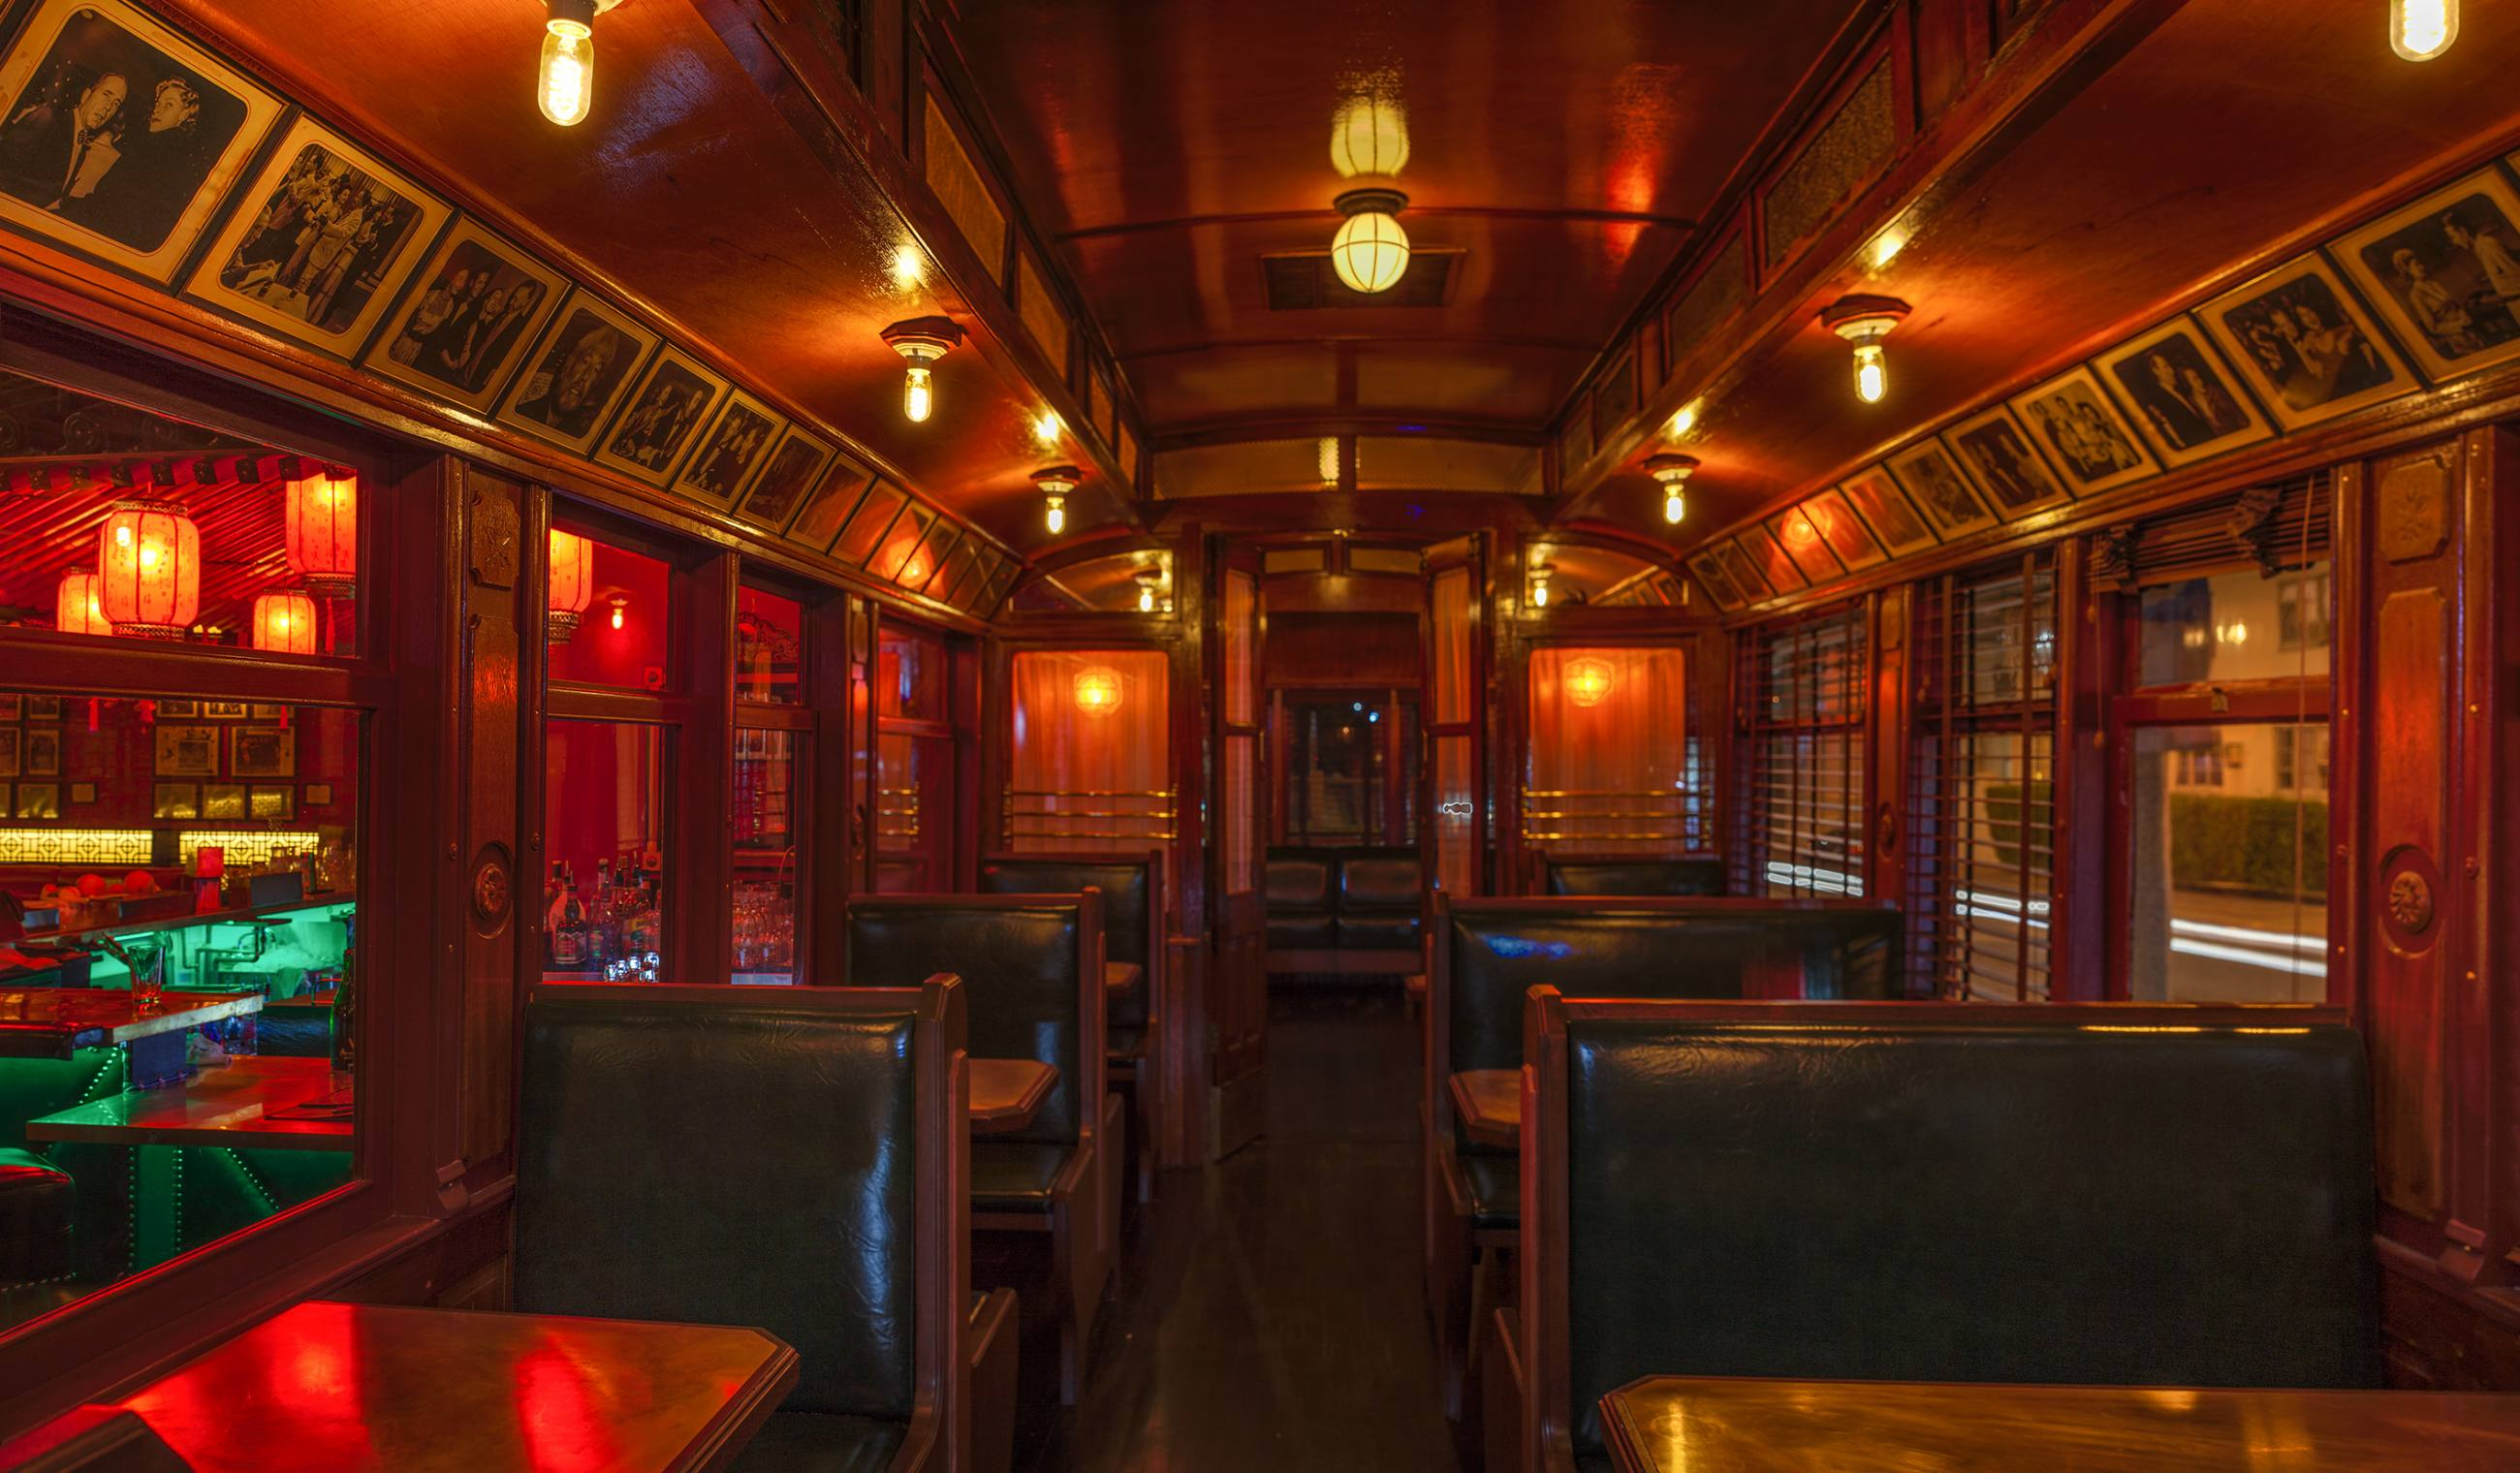 Interior of the Pacific Electric Red Car trolley at the Formosa Cafe